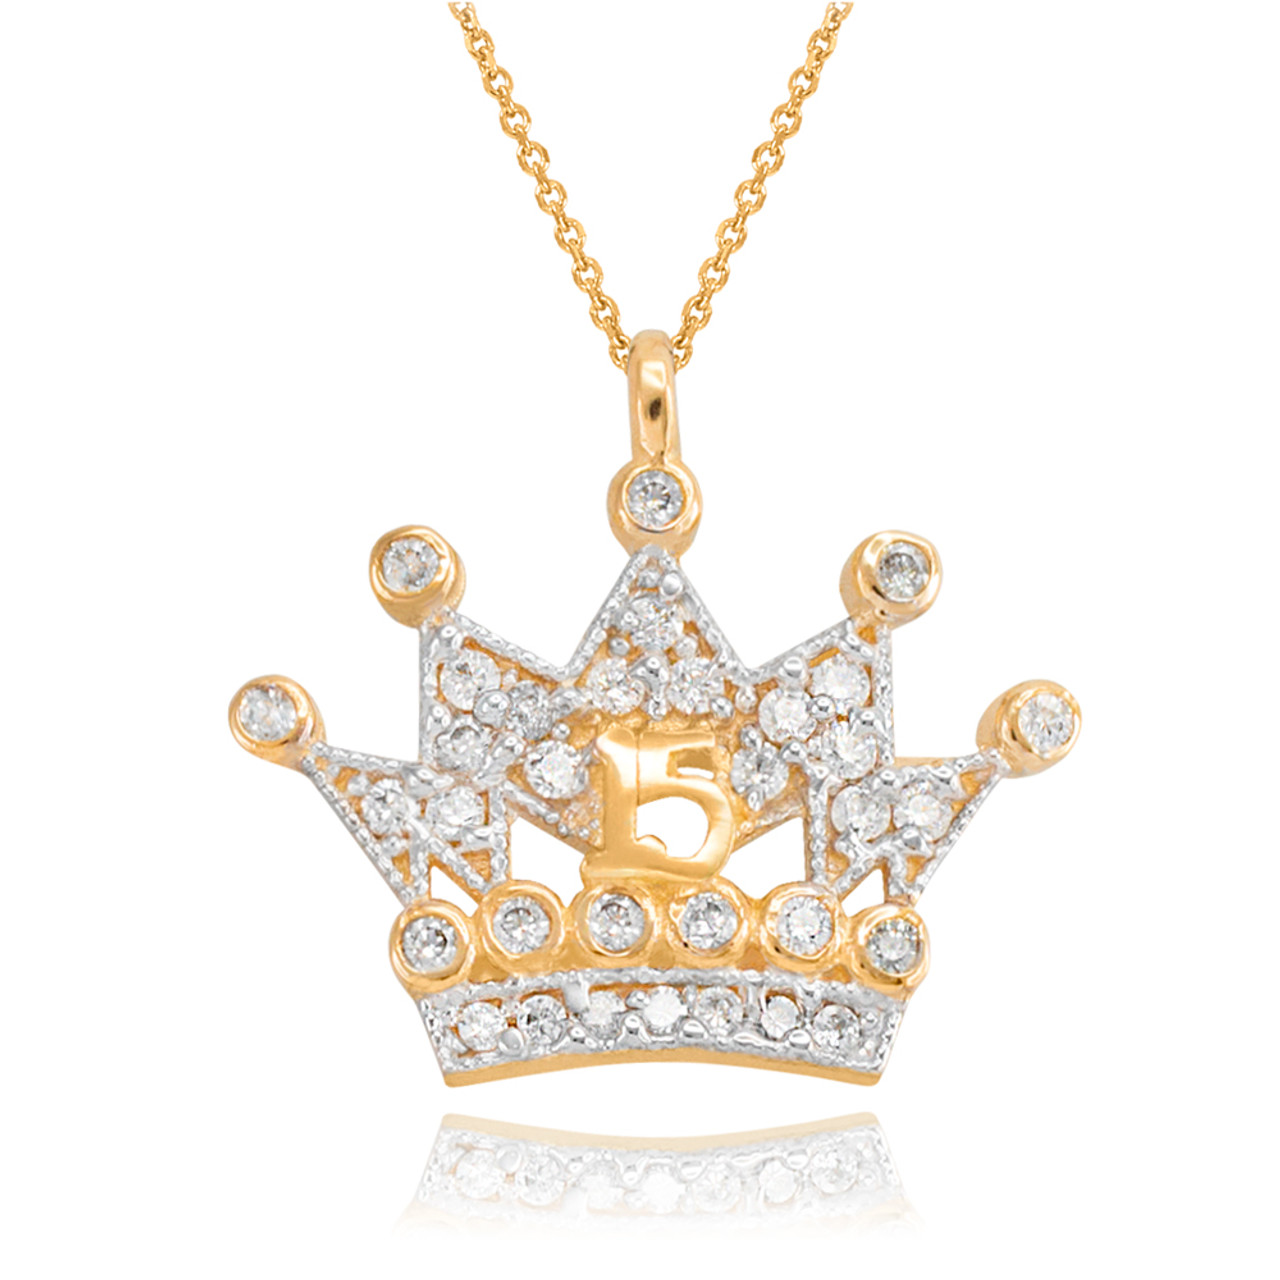 crown buy pendant official palace gold buckingham a victoria necklace queen royal